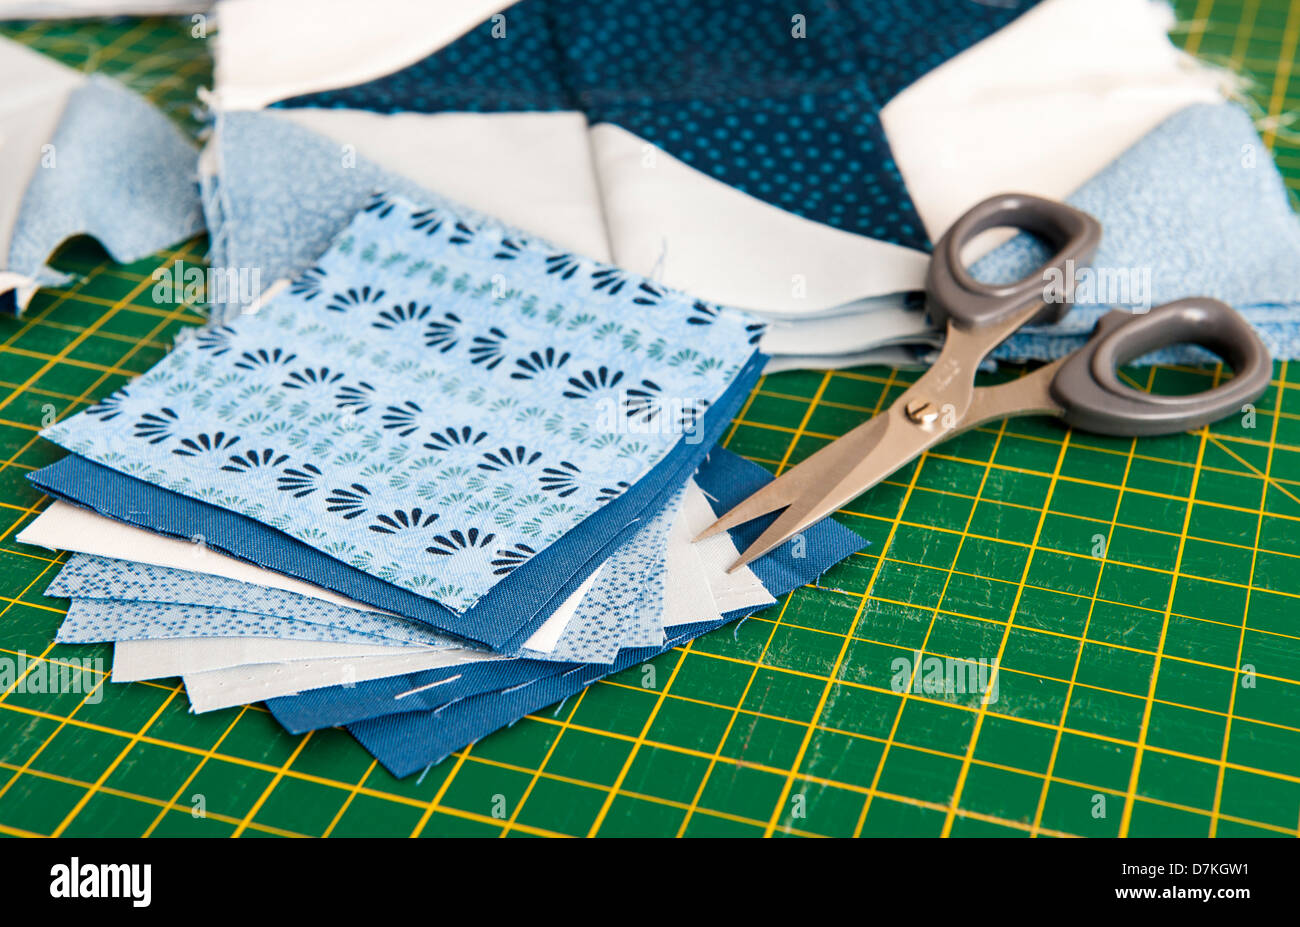 Quilting or patchwork materials and tools on a green measuring ... : quilting measuring tools - Adamdwight.com